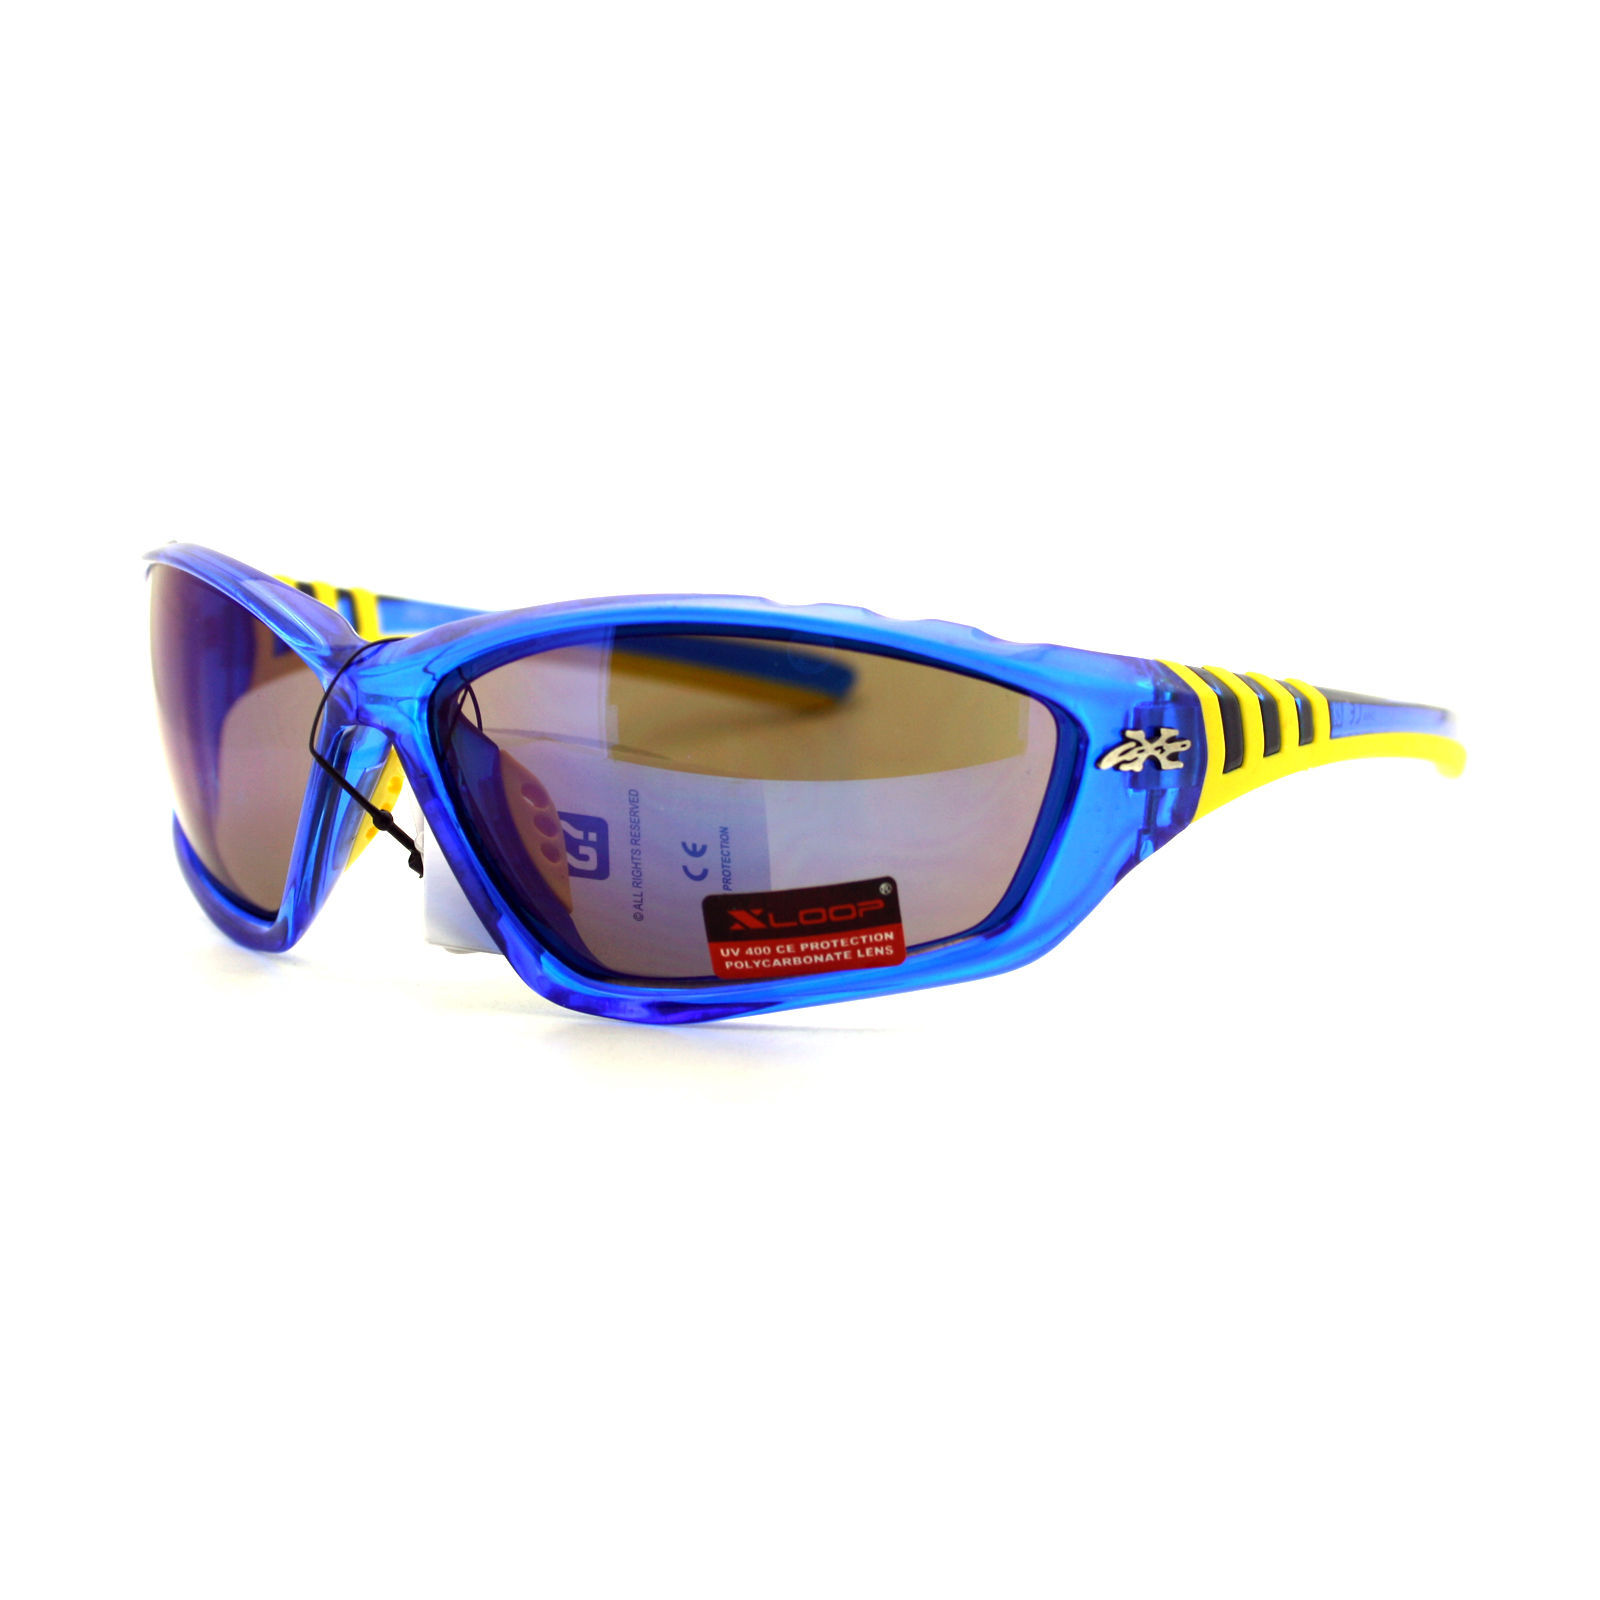 Xloop Sports Sunglasses Oval Wrap Around Unisex Frame Rubber Nose